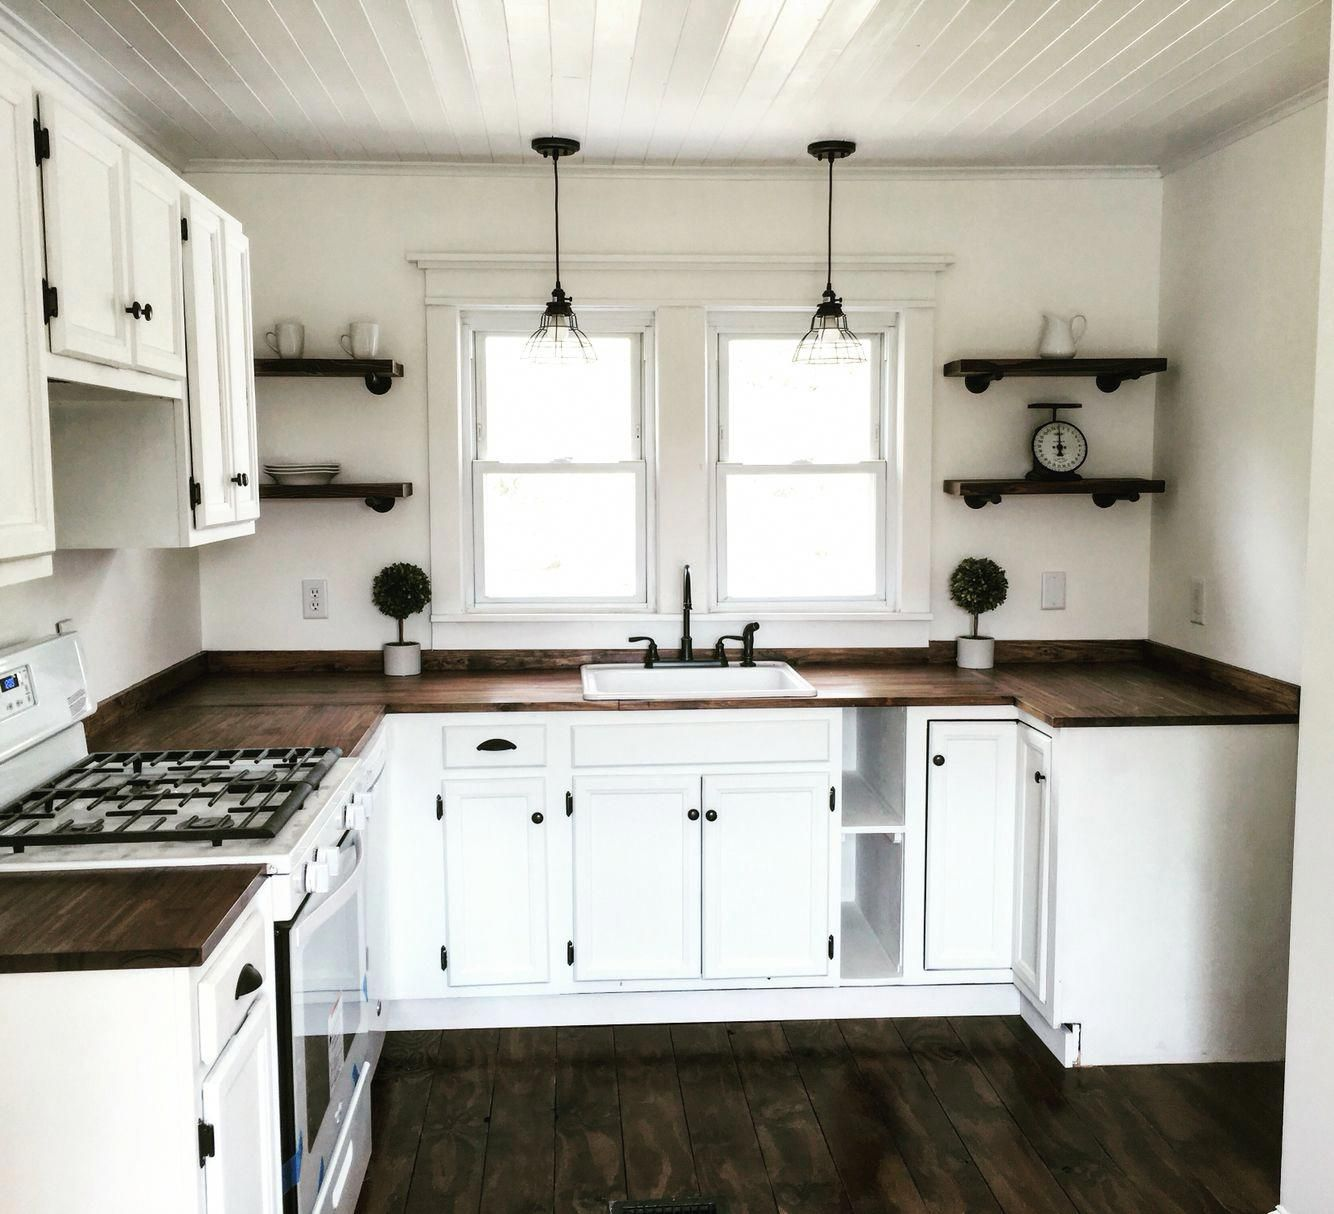 farmhouse kitchen on the cheap cabinets from craigslist painted with homemade chalk pa on kitchen cabinets farmhouse style id=71035